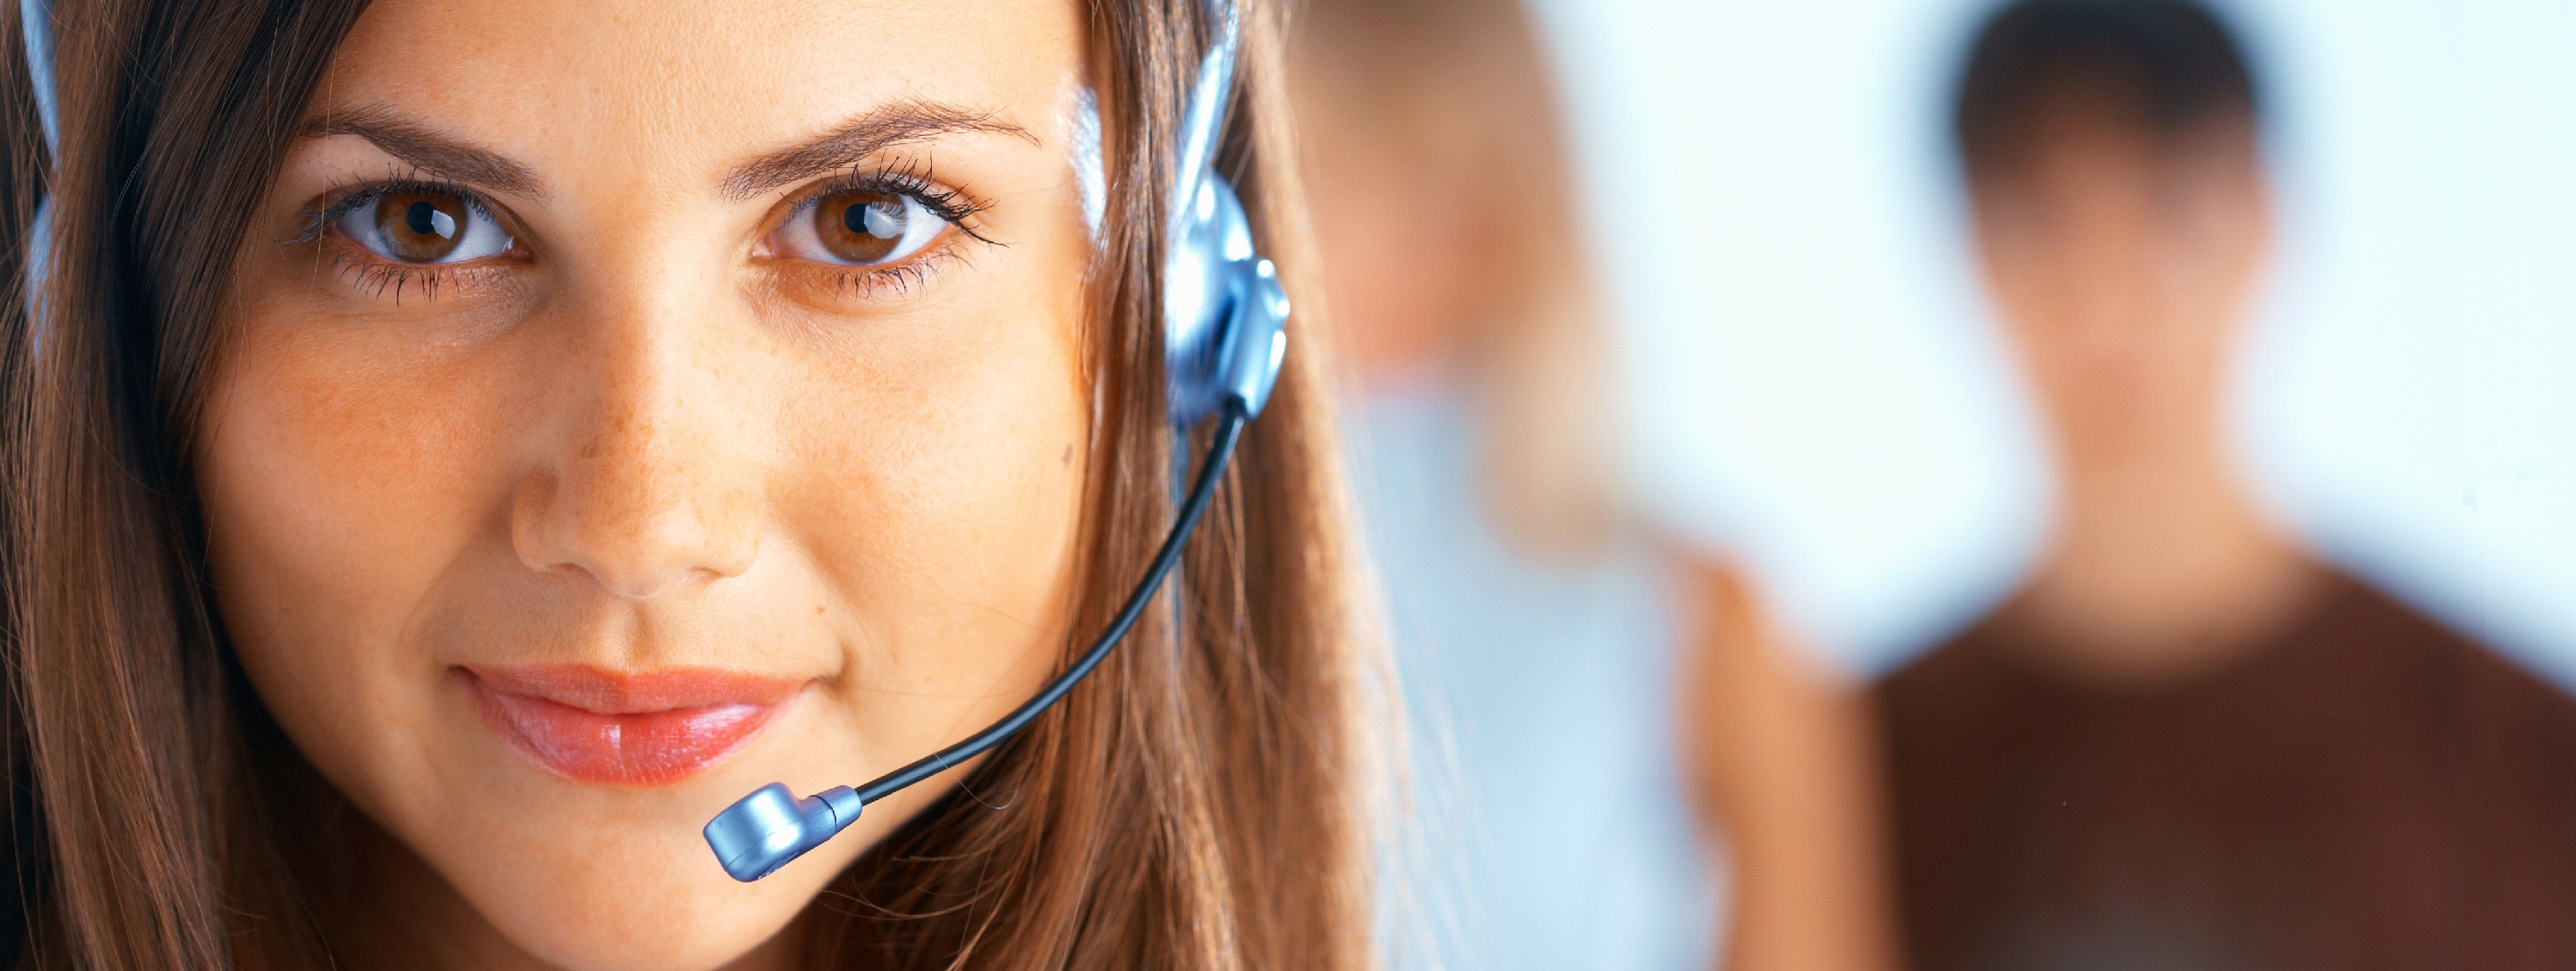 Best multilingual call center, cost effective and high quality support